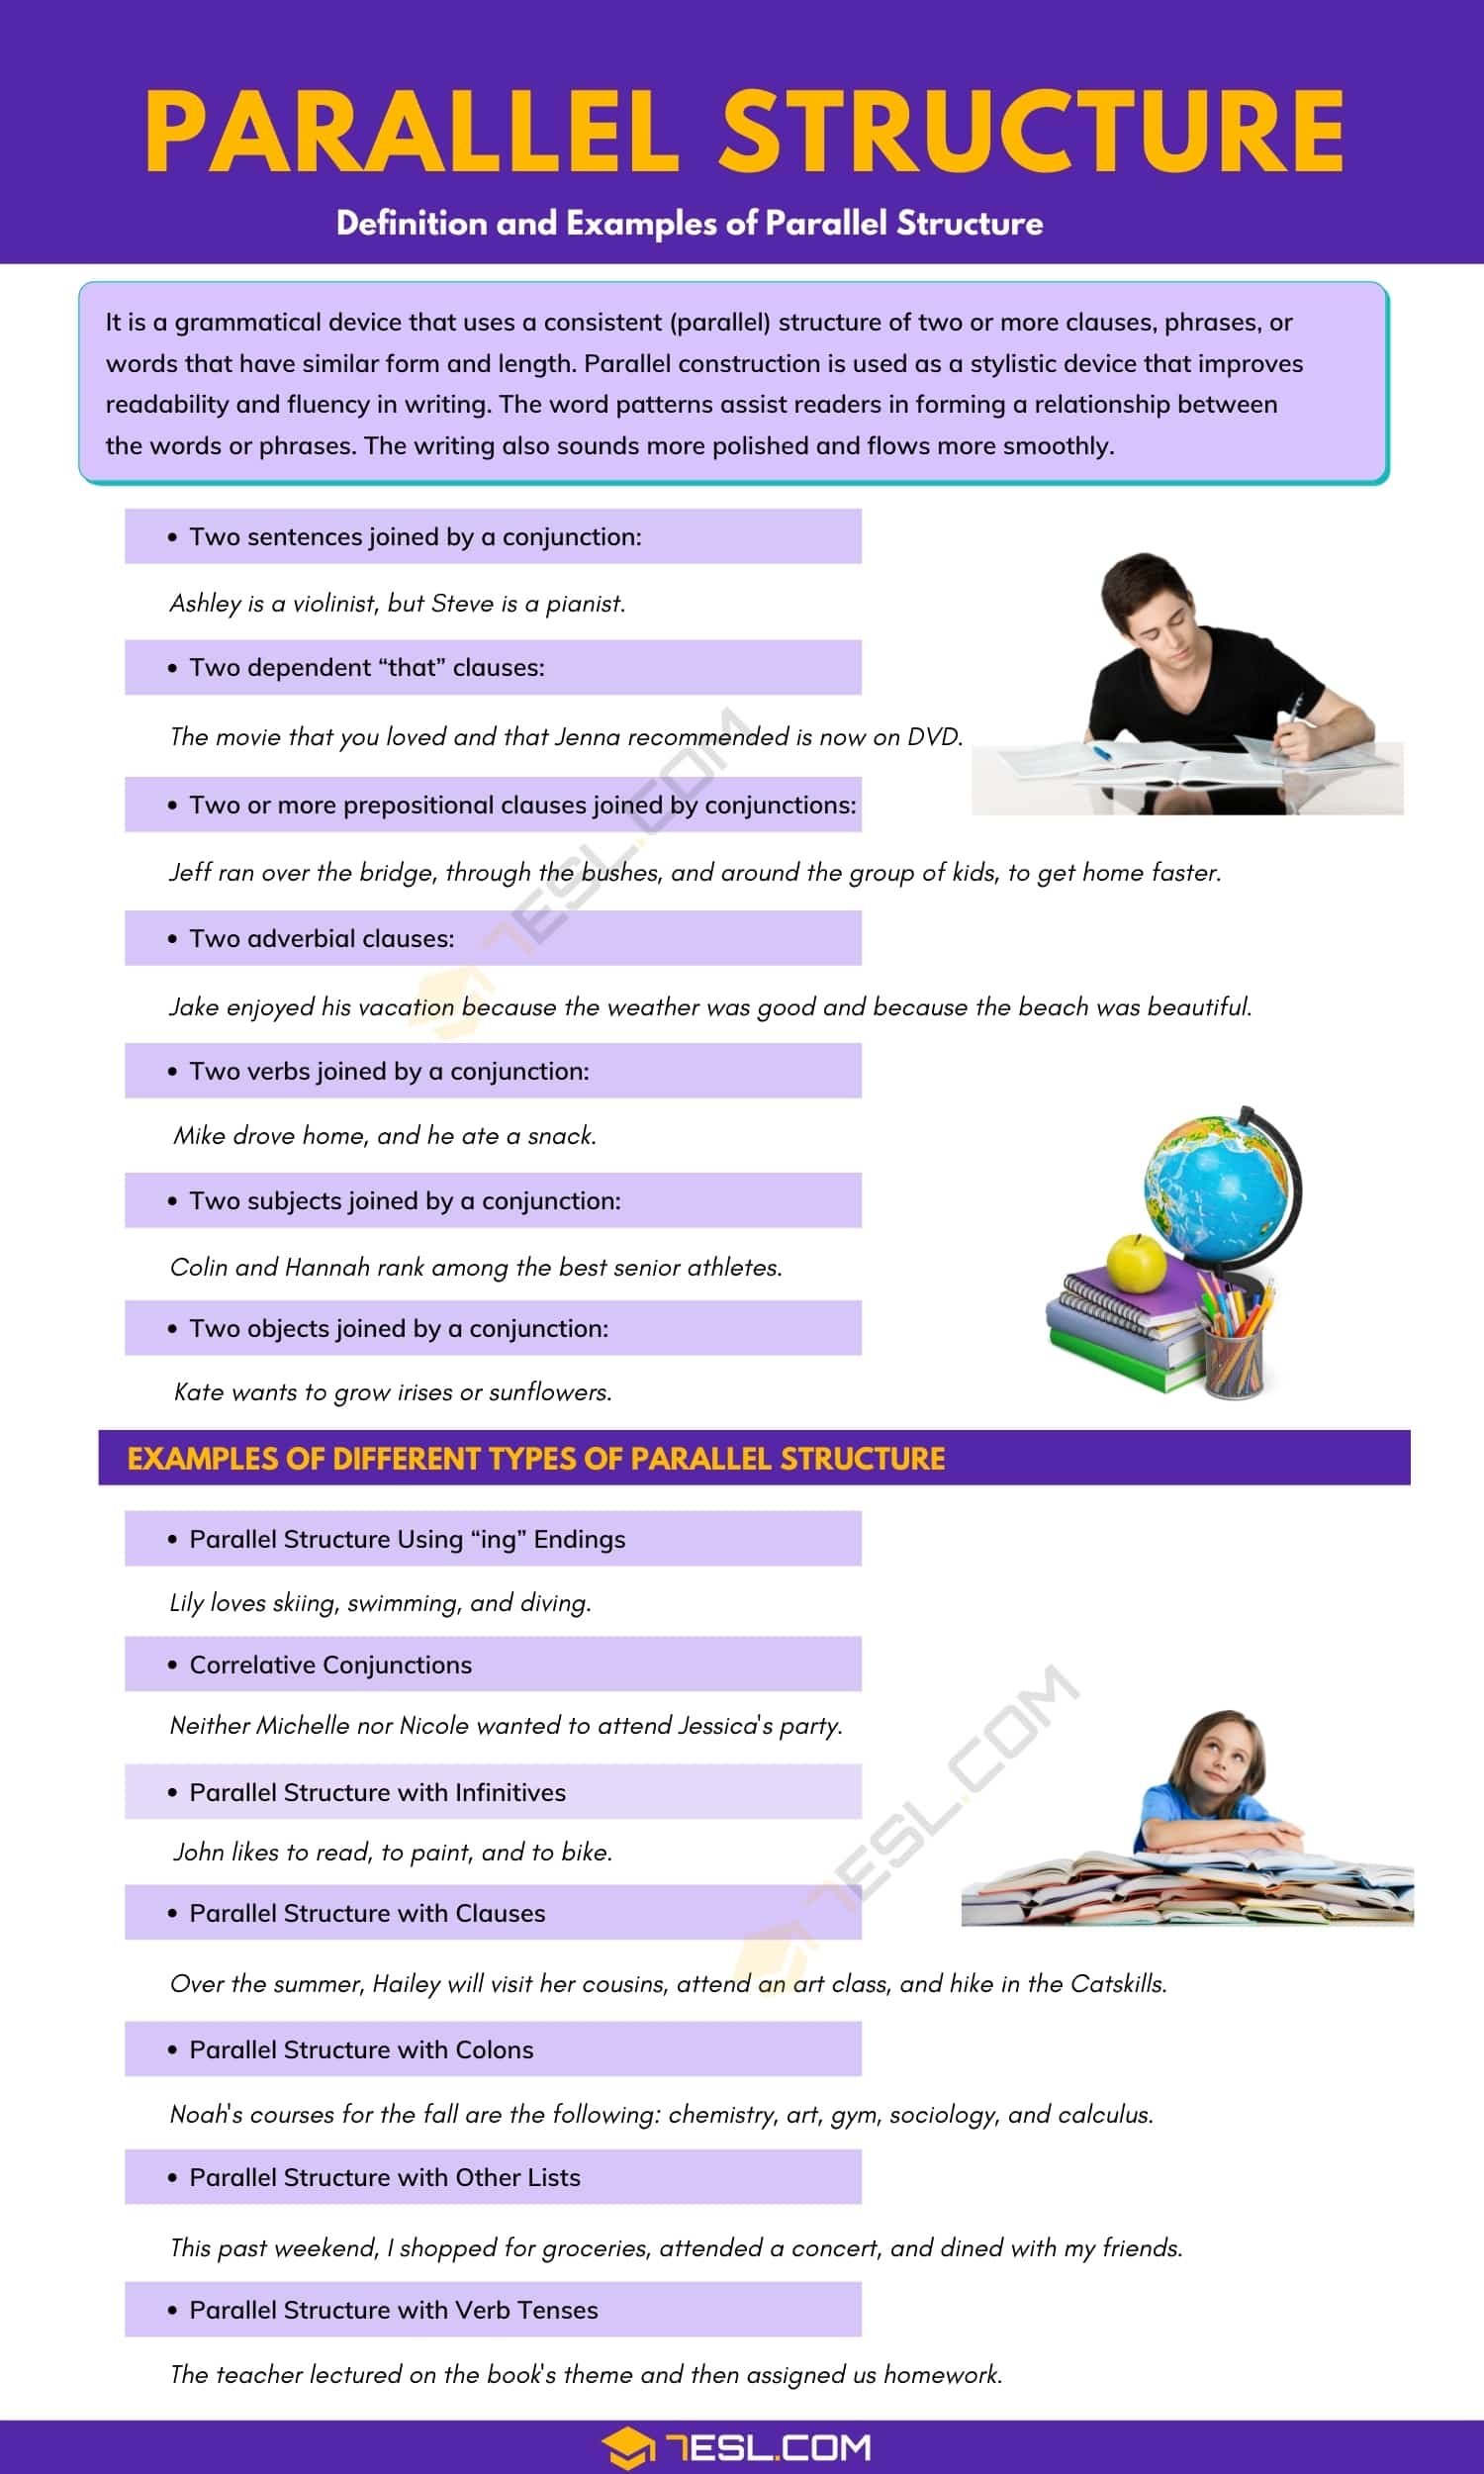 Parallel Structure in Writing | Definition and Examples of Parallel Structure